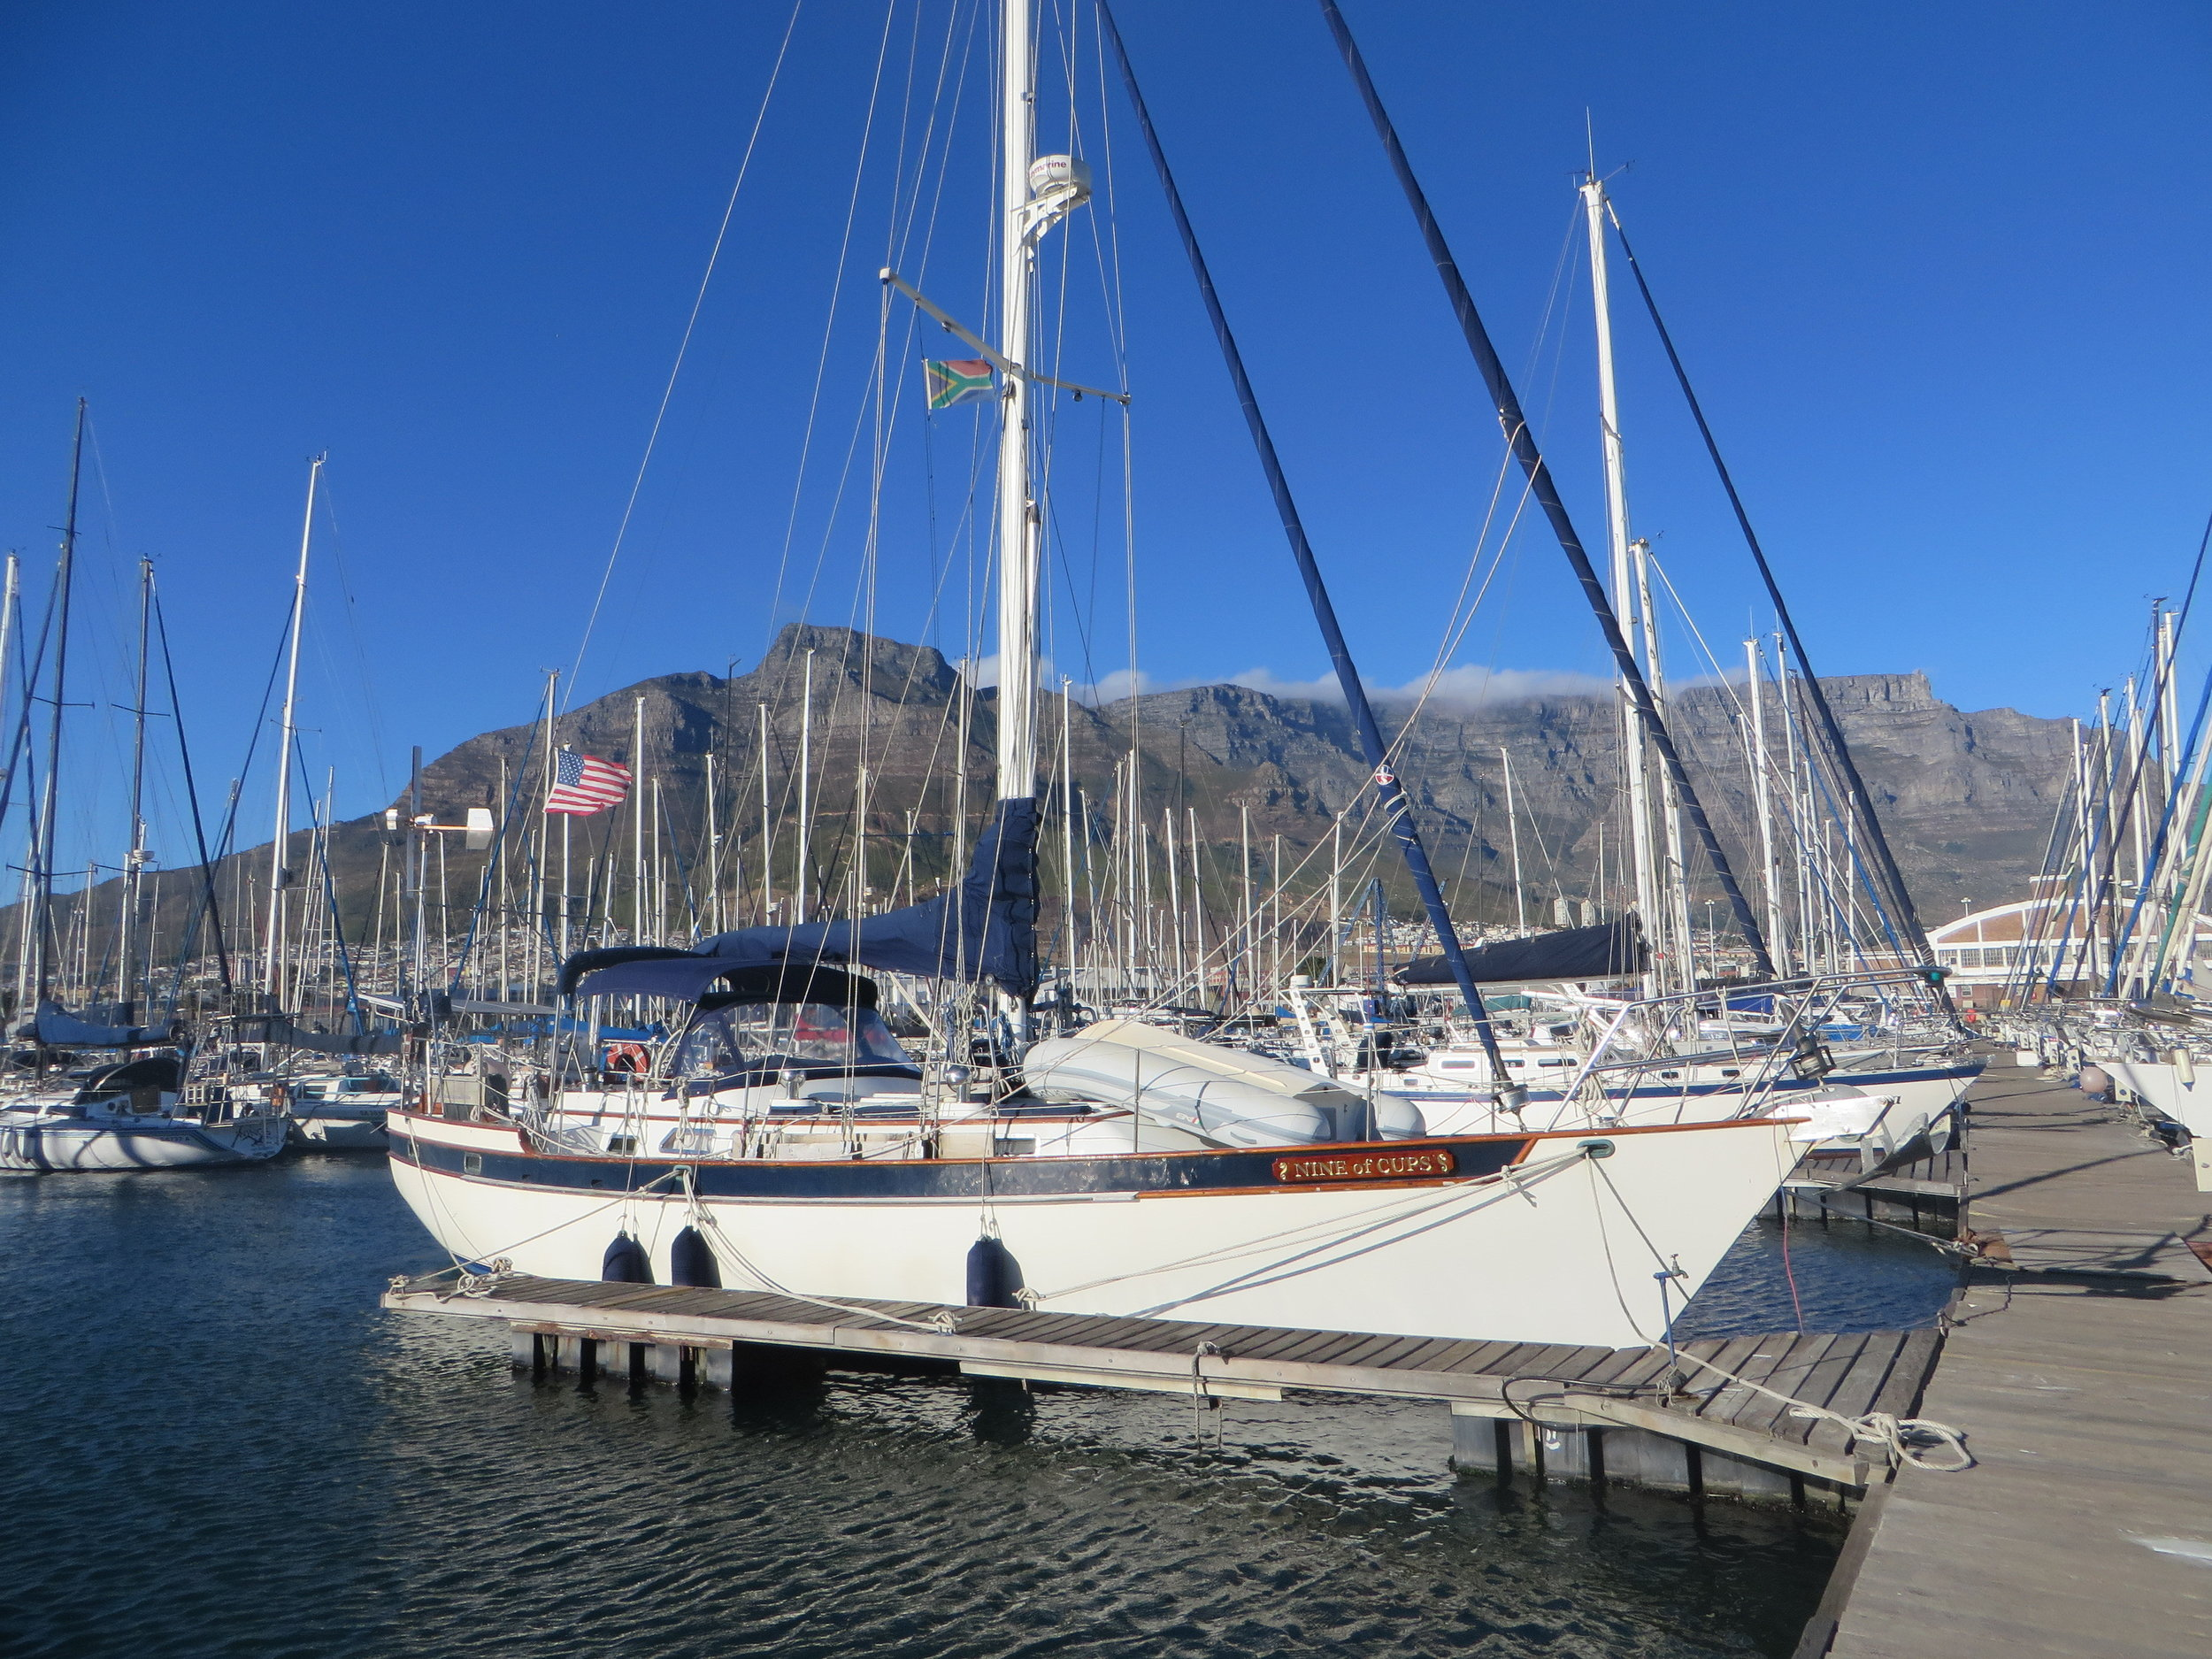 Table Mountain backdrop as we arrive at Royal Cape Yacht Club, Cape Town, South Africa